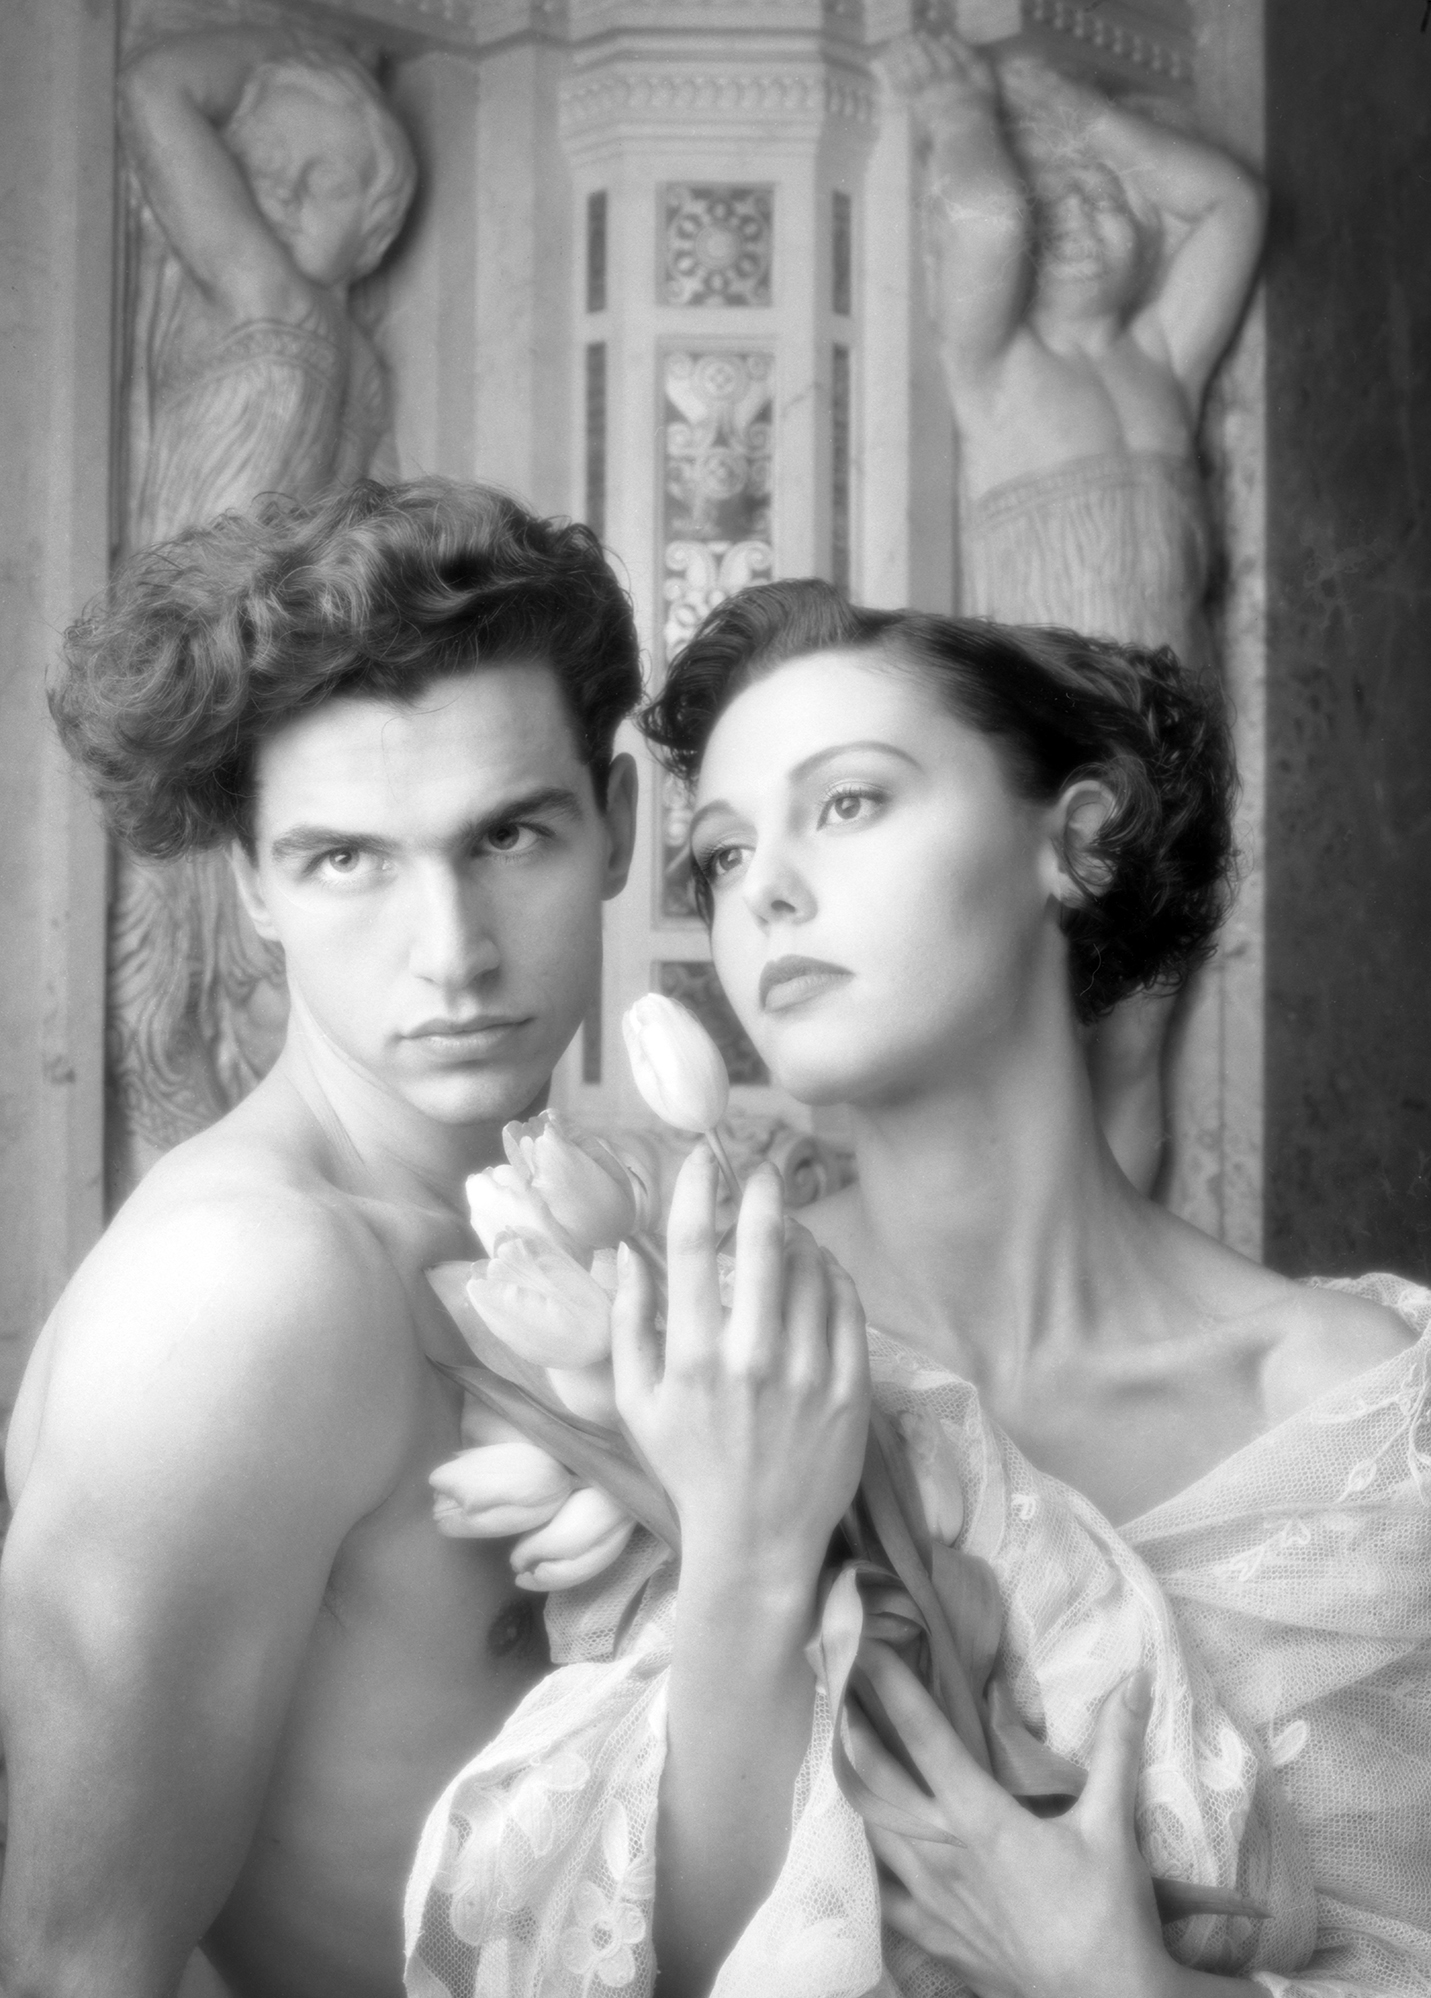 Couple Portrait In the Spa - Photo Patrick Richmond Nicholas©